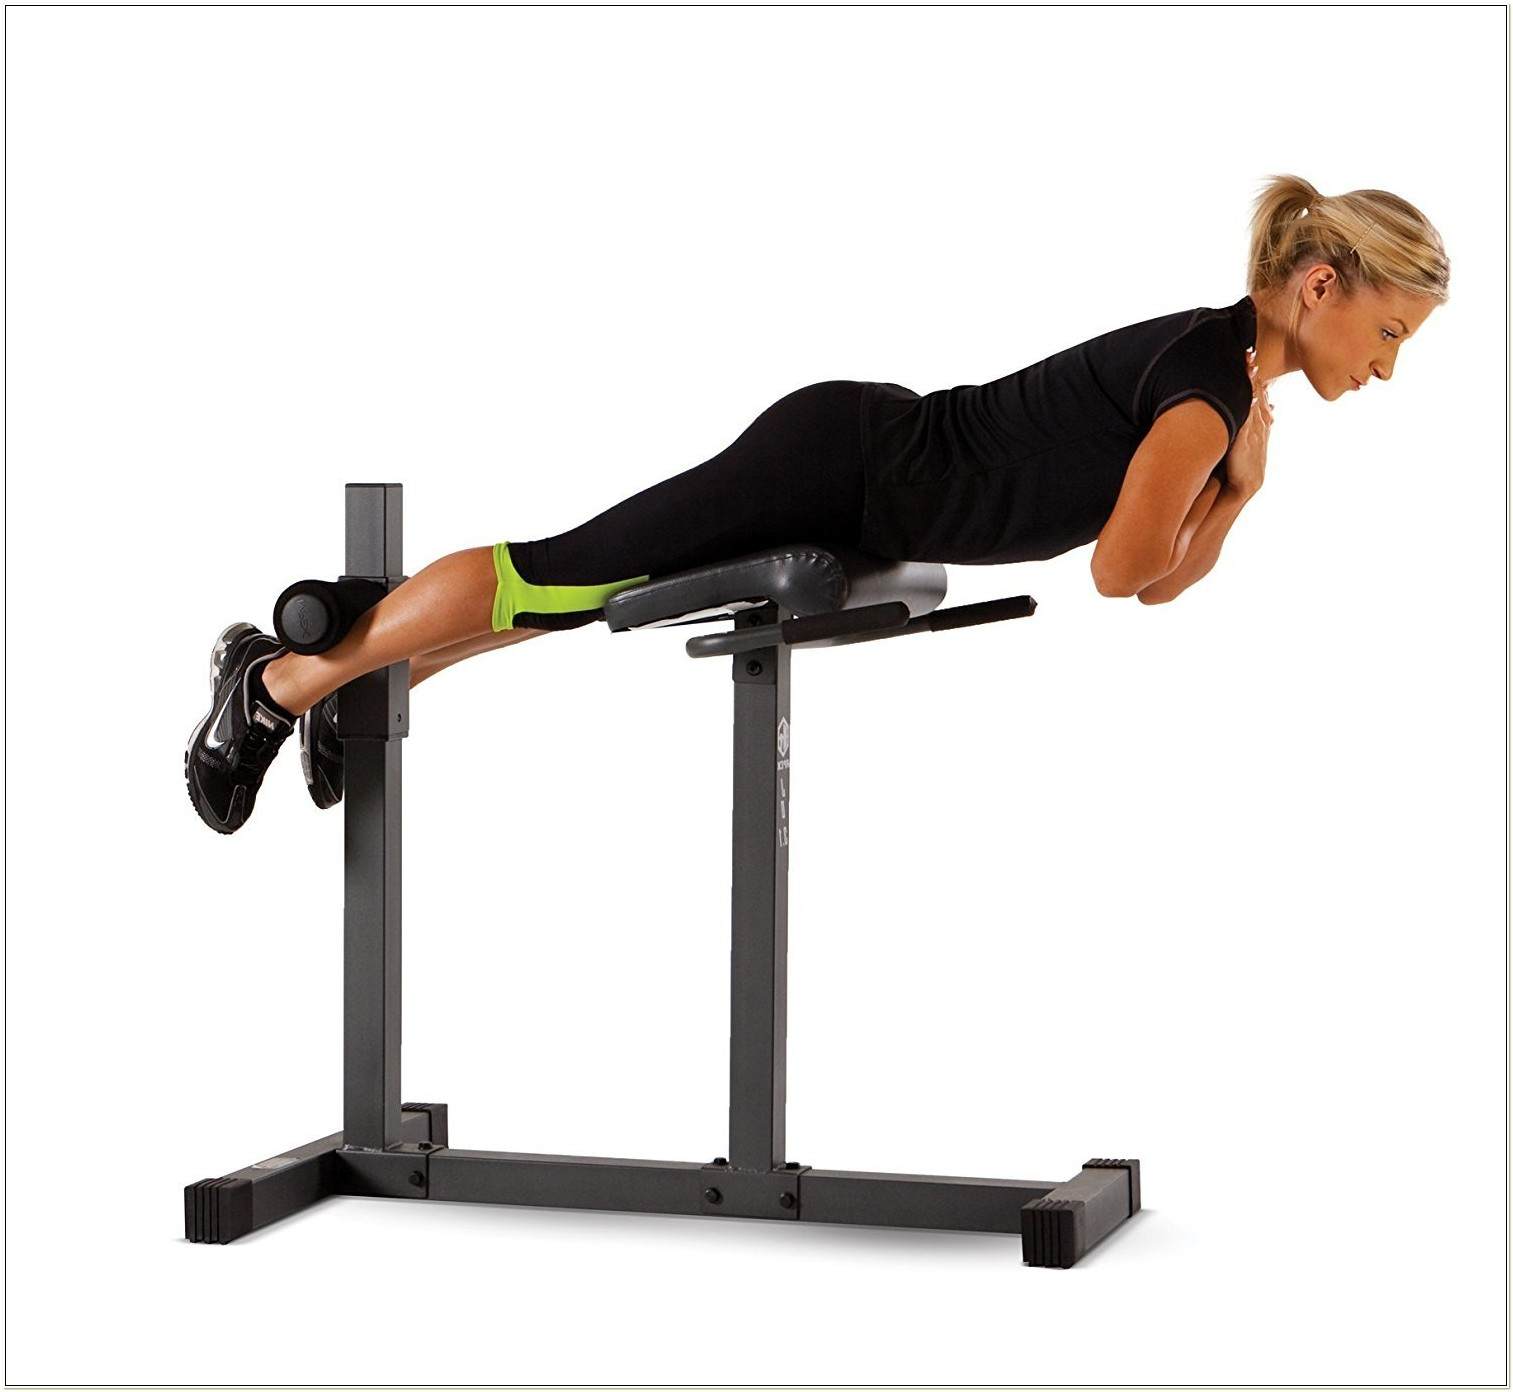 Cheap Roman Chair Exercise Equipment Hyperextension Bench